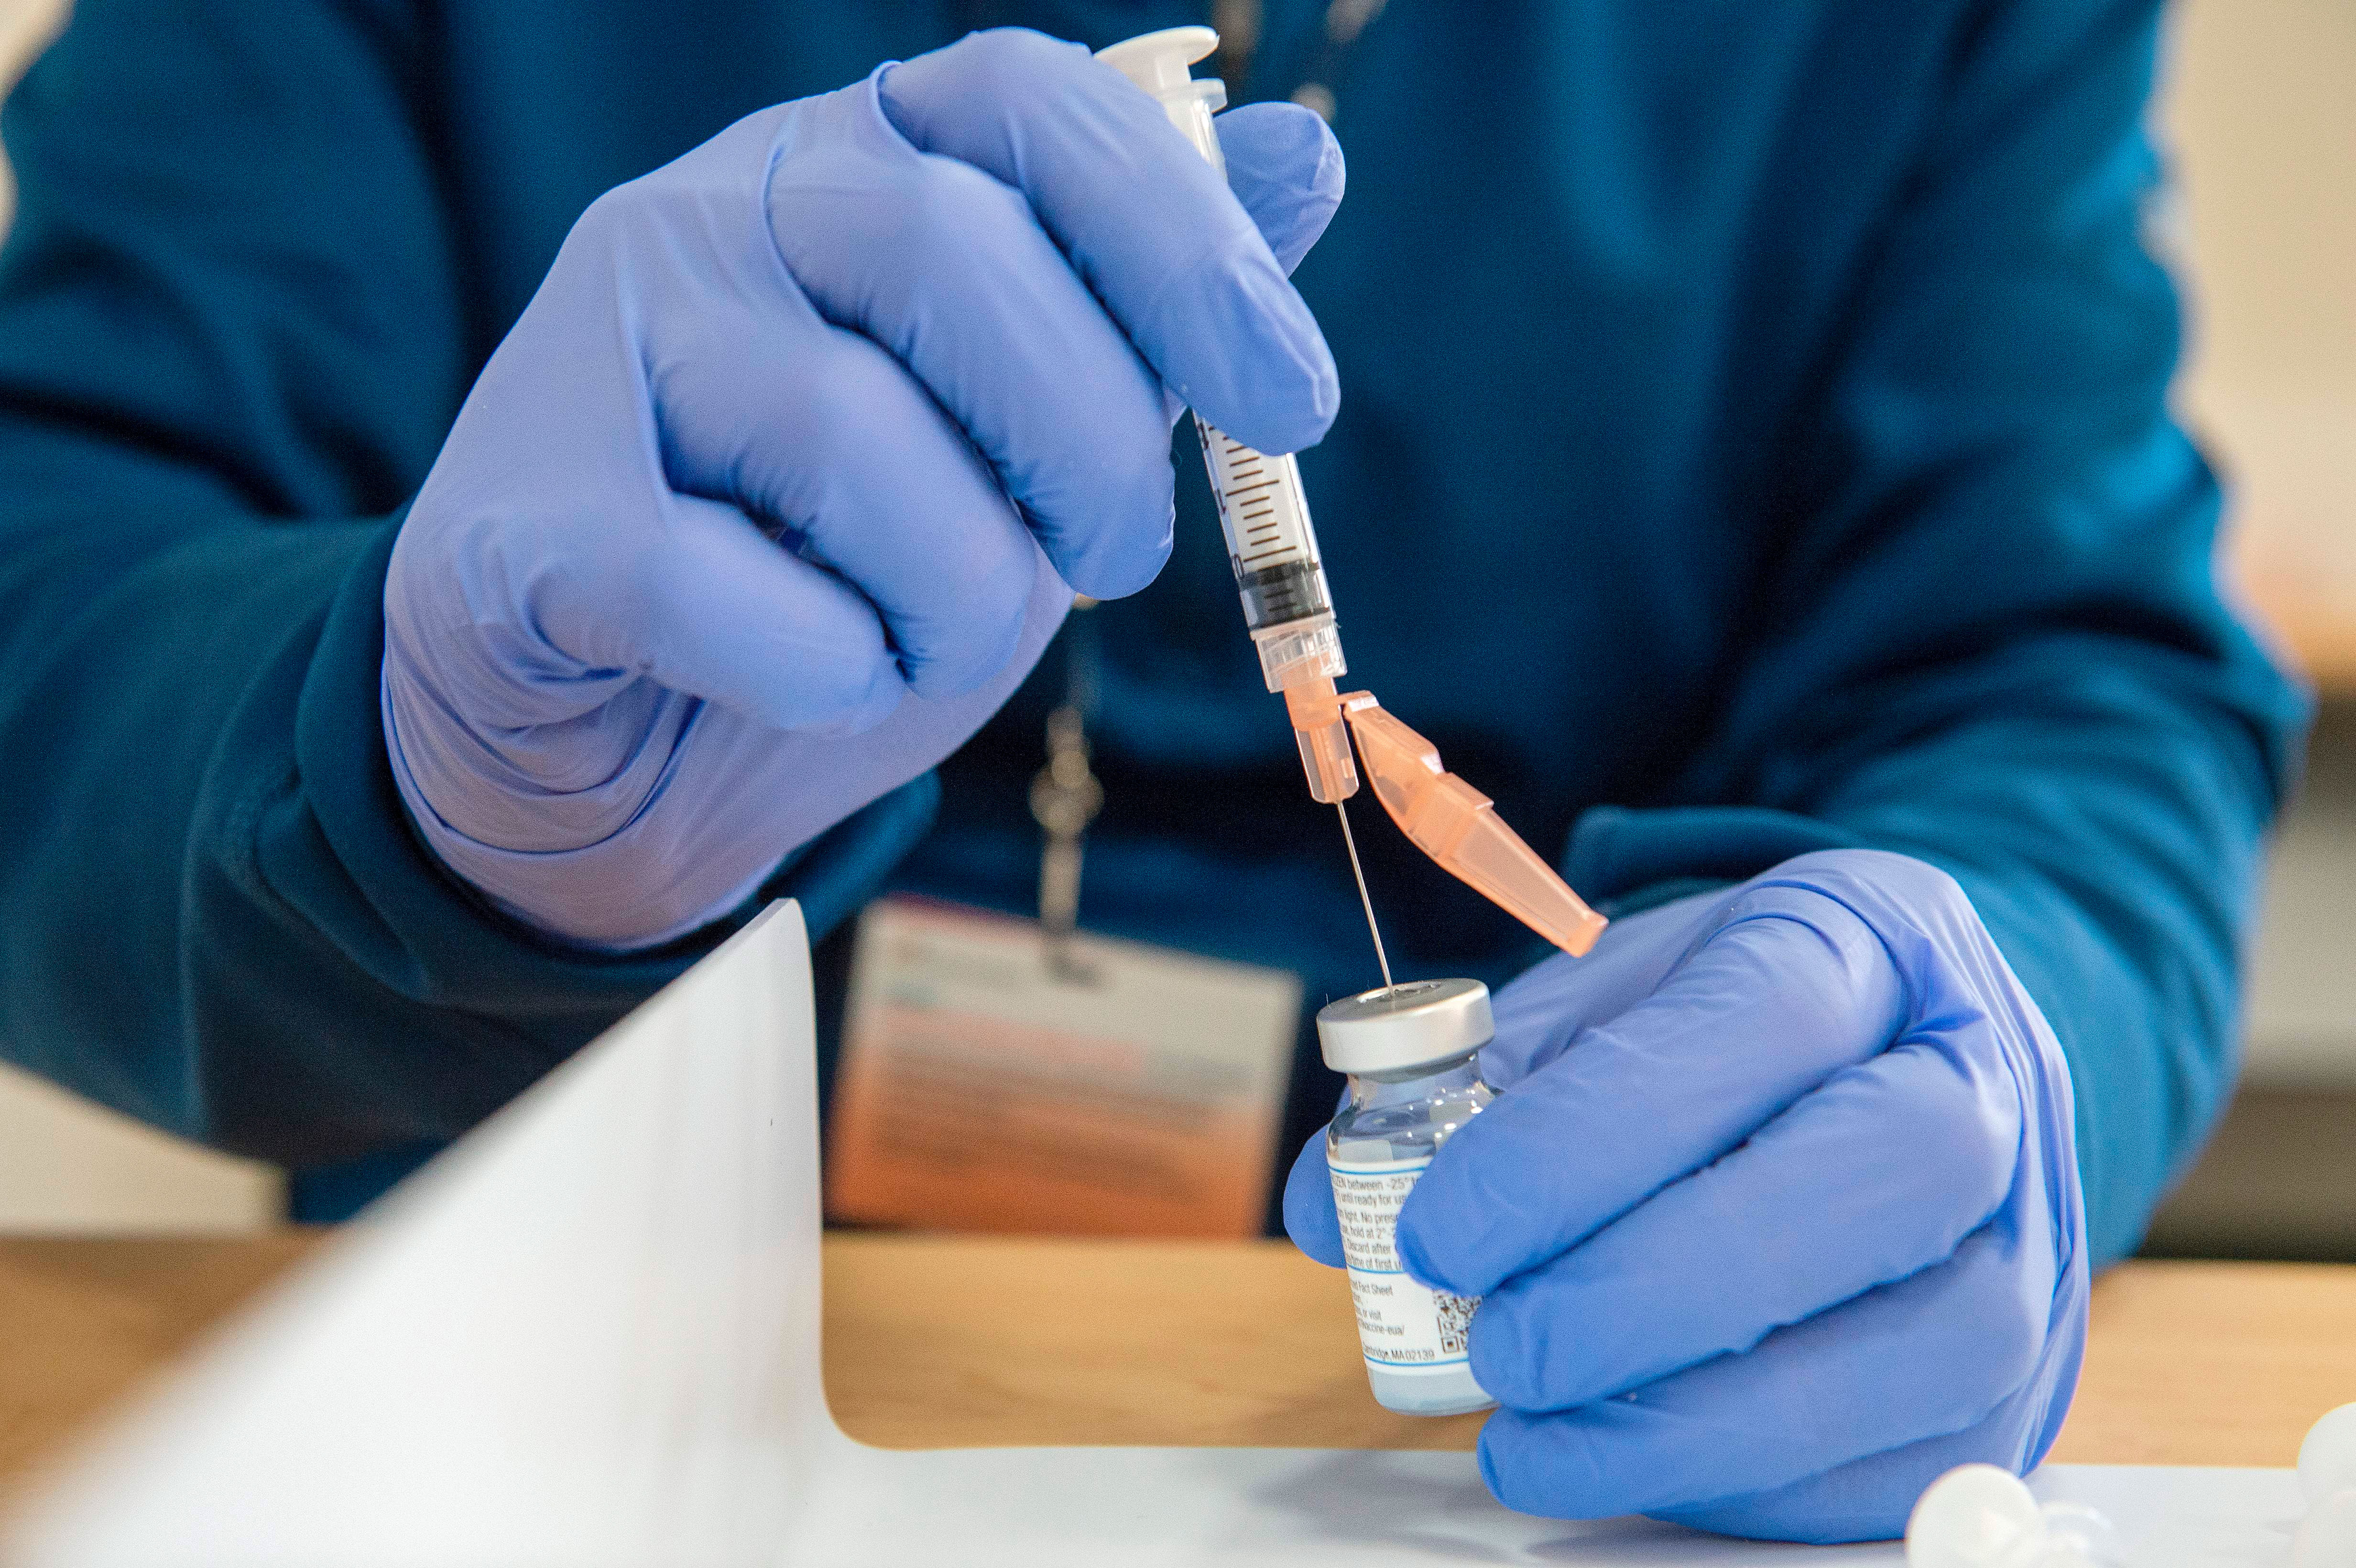 A pharmacist fills syringes with the Moderna Covid-19 vaccine at UMass Memorial hospital in Marlborough, Massachusetts, on January 12.